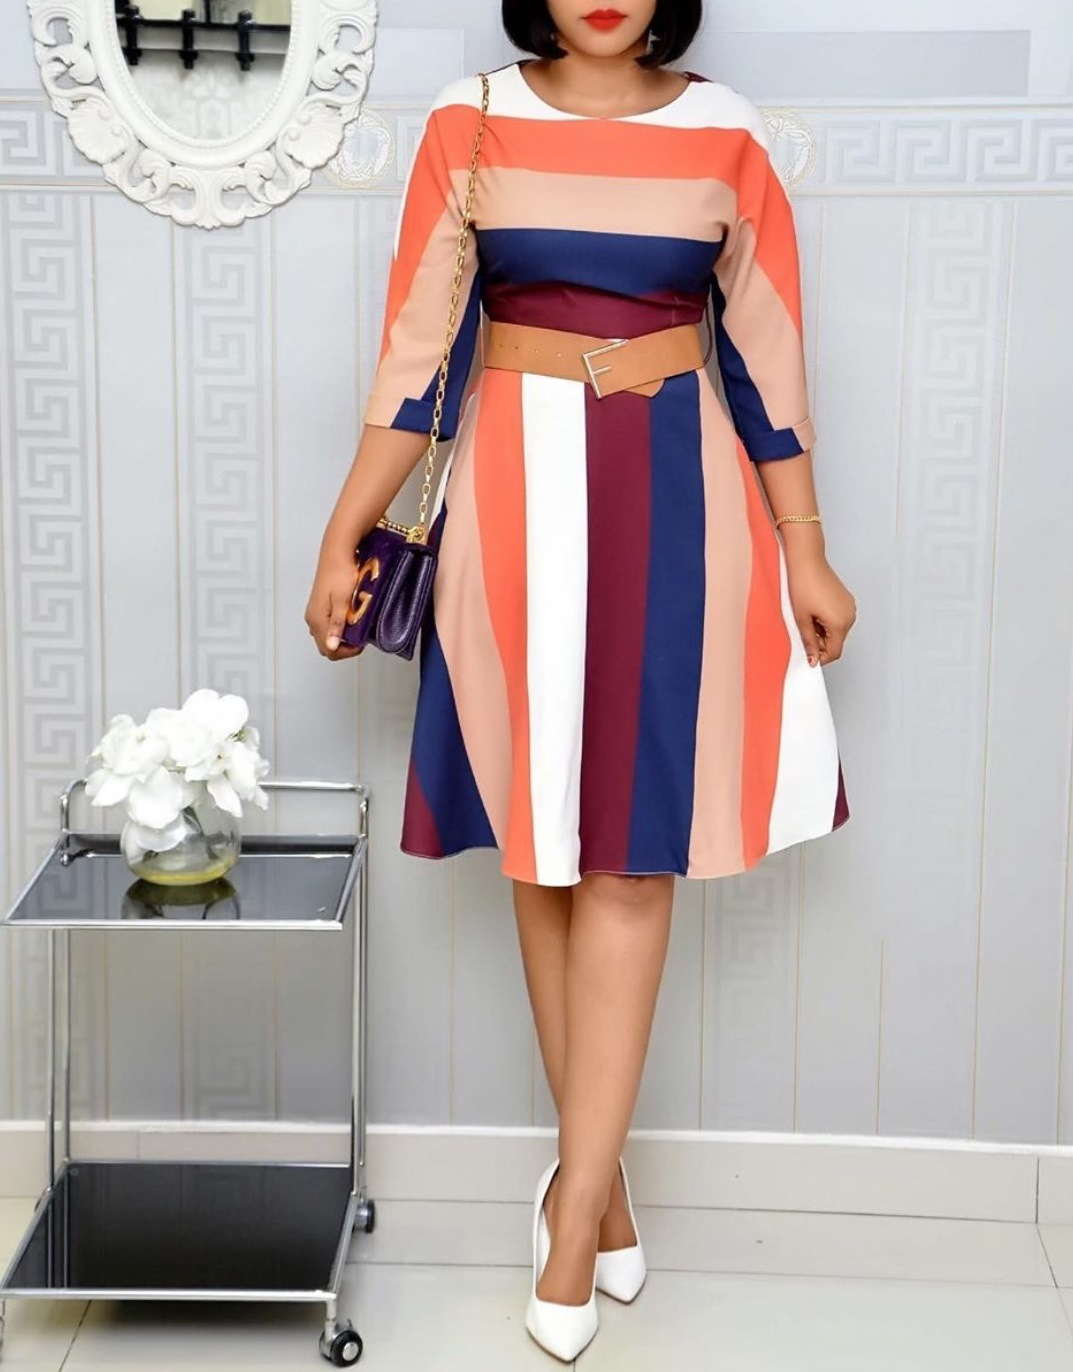 China Elegant Ladies Multi Colorstriped Half Sleeve Knee Length Dress Plus Size Dress Fashion Women A Line Casual Wear Daily Wear Office Dresses Esg13654 China Dress And Ladies Dress Price